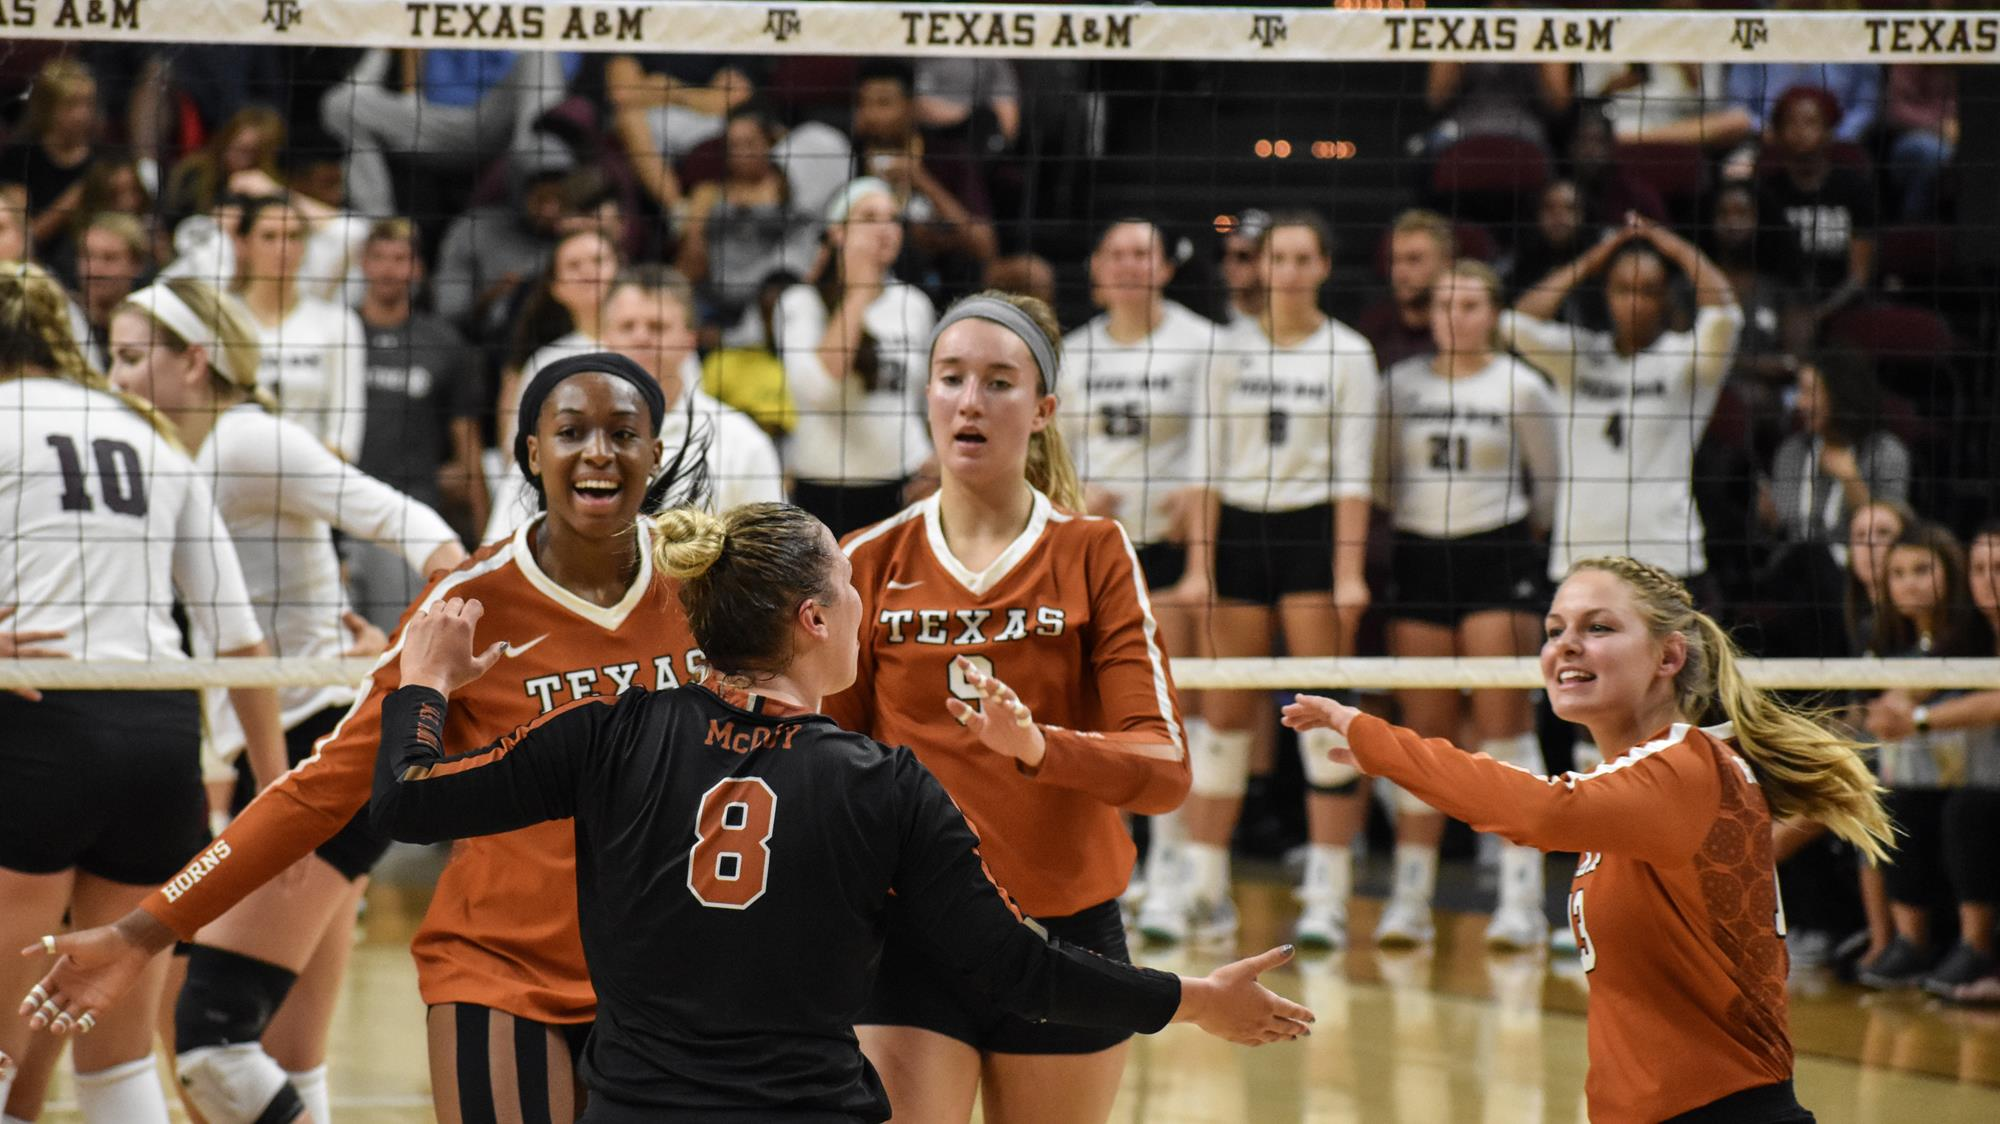 Video No 6 Volleyball Takes Down Texas A M In College Station University Of Texas Athletics